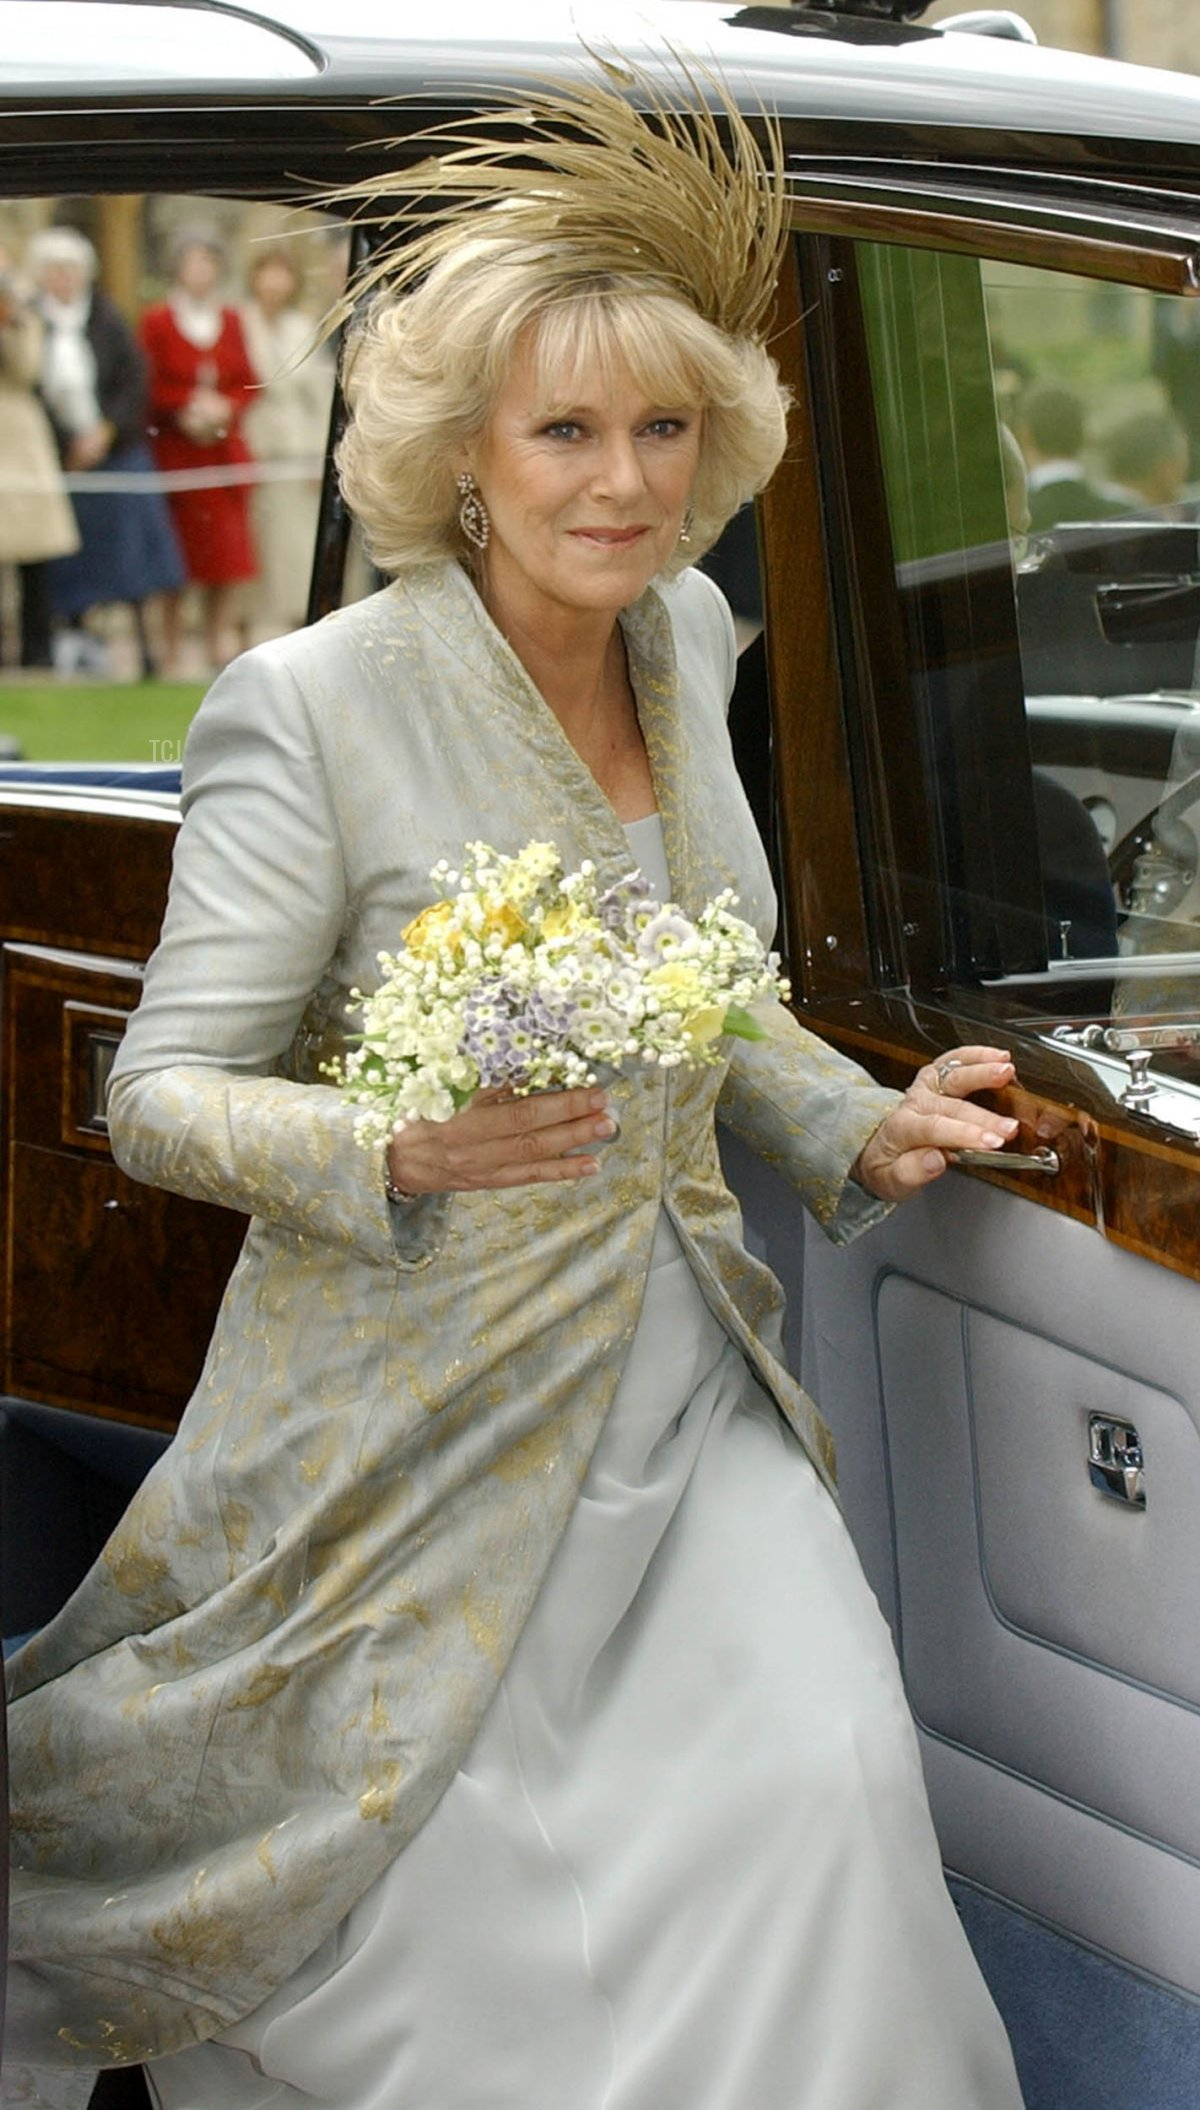 The Duchess of Cornwall, formerly Camilla Parker Bowles, arrives at St Georges Chapel in Windsor Castle after her civil wedding to Prince Charles 09 April 2005